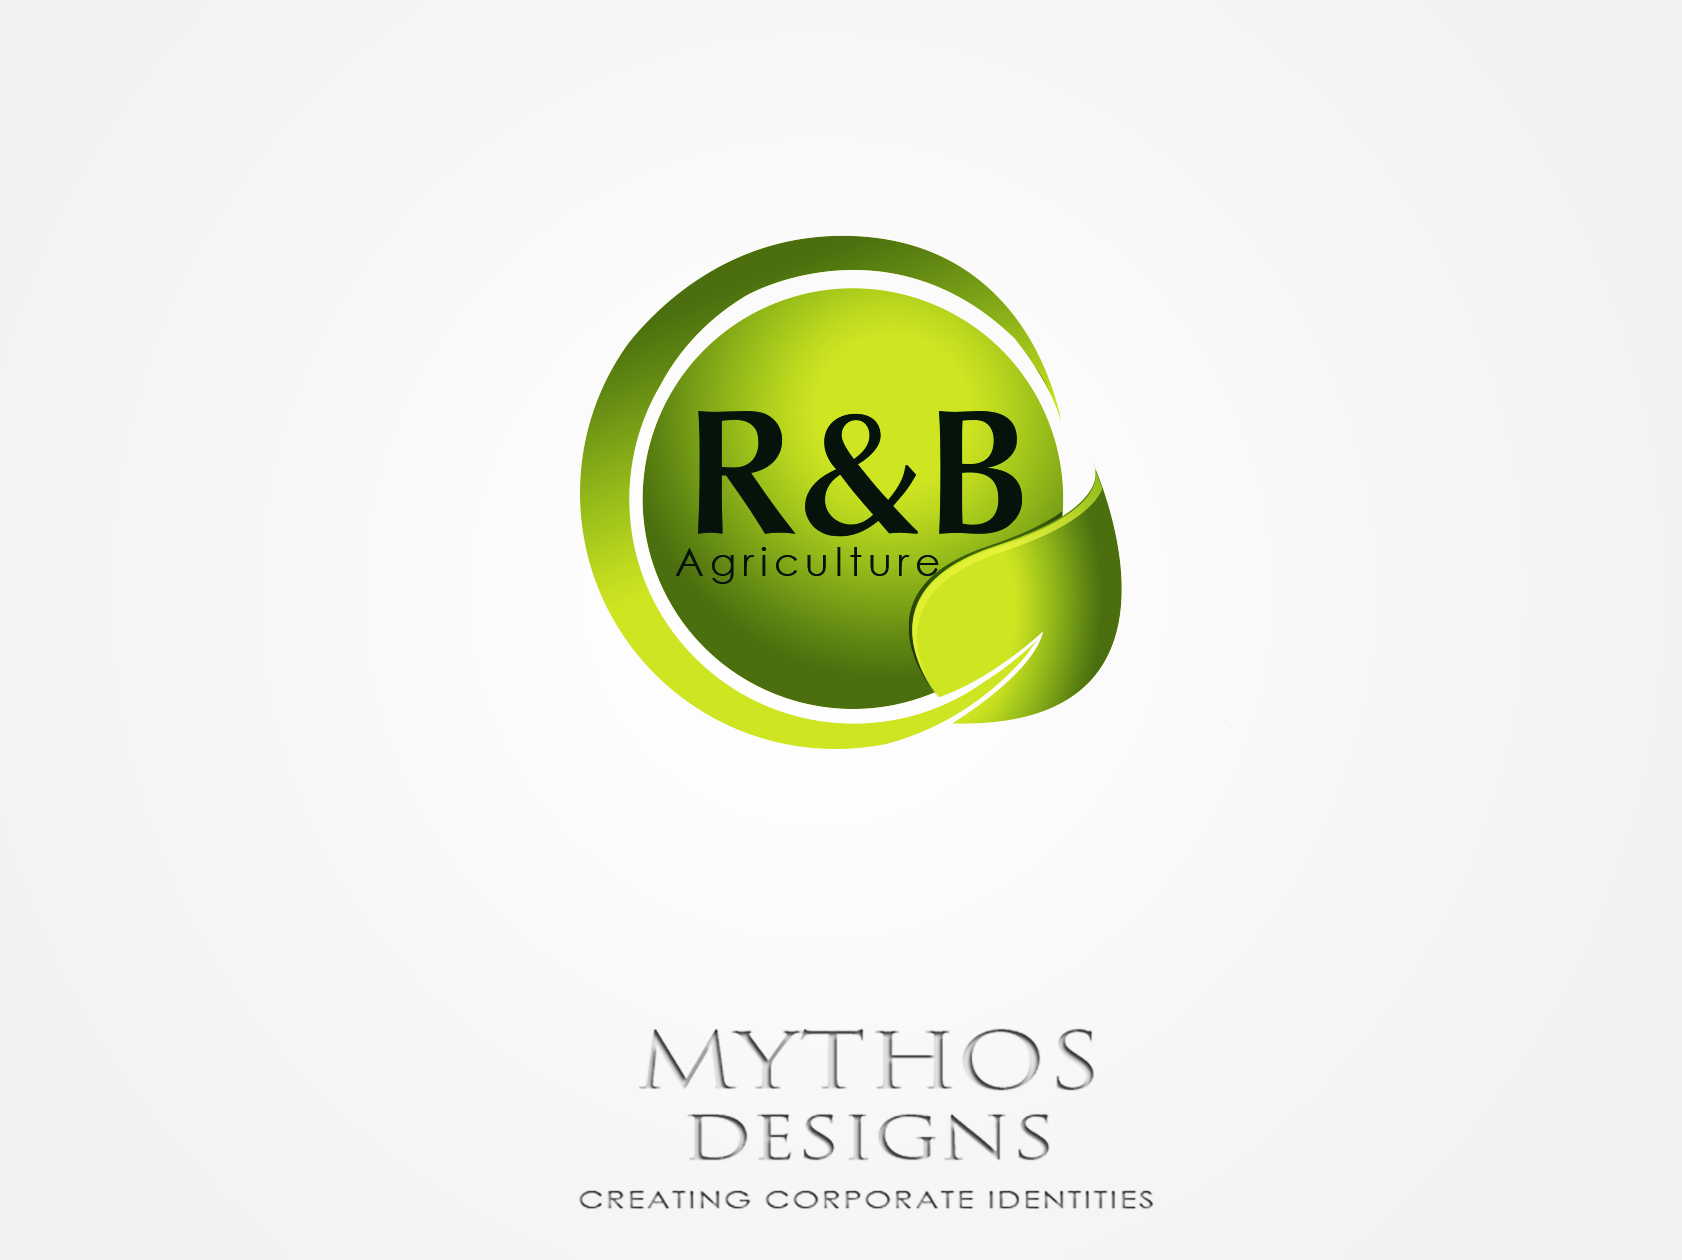 Logo Design by Mythos Designs - Entry No. 137 in the Logo Design Contest Captivating Logo Design for R & B Agriculture.